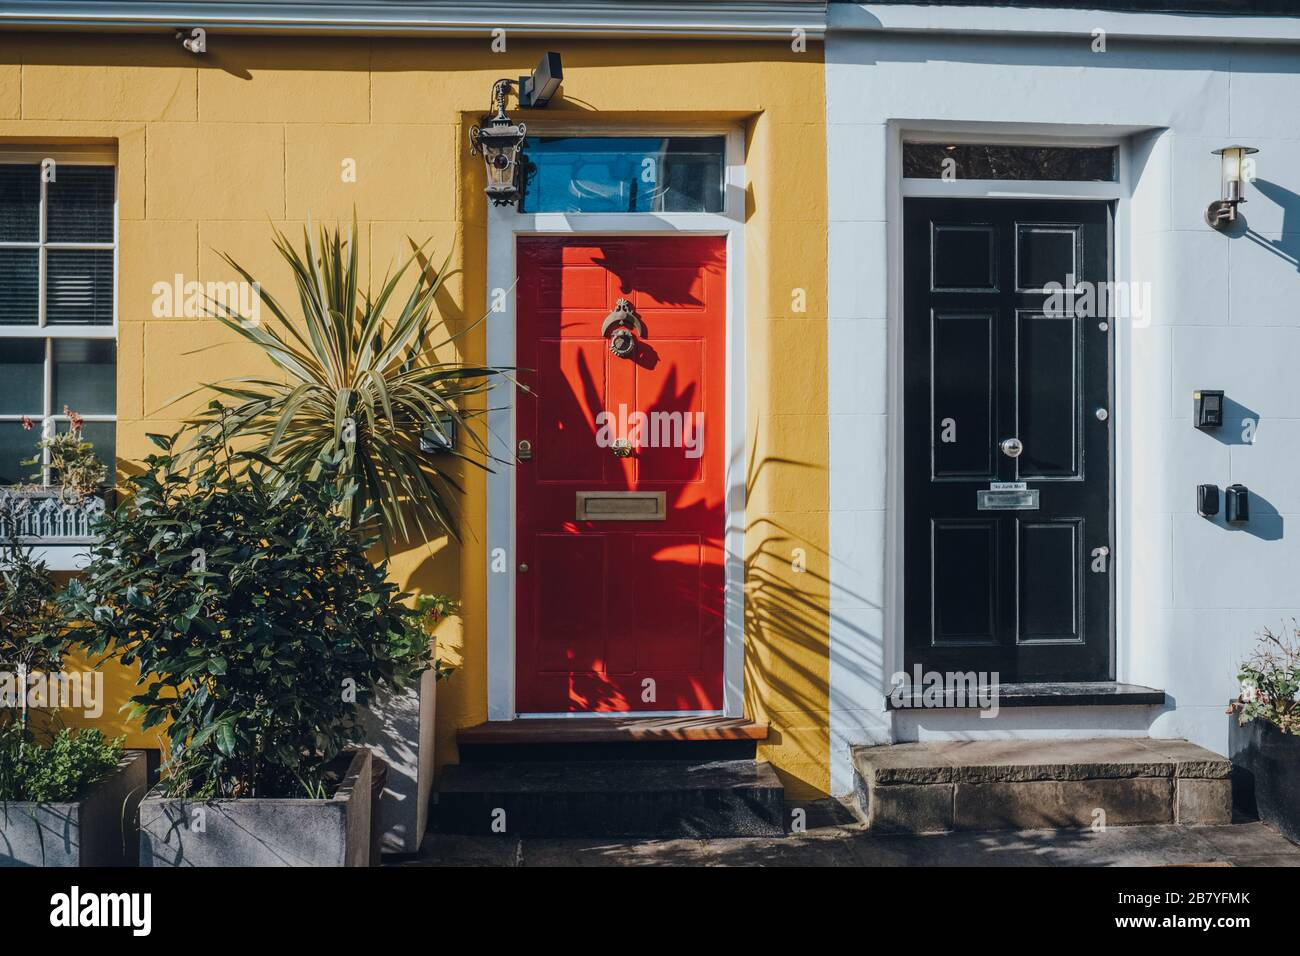 Colourful bright red front door on a yellow house in London, UK. Stock Photo